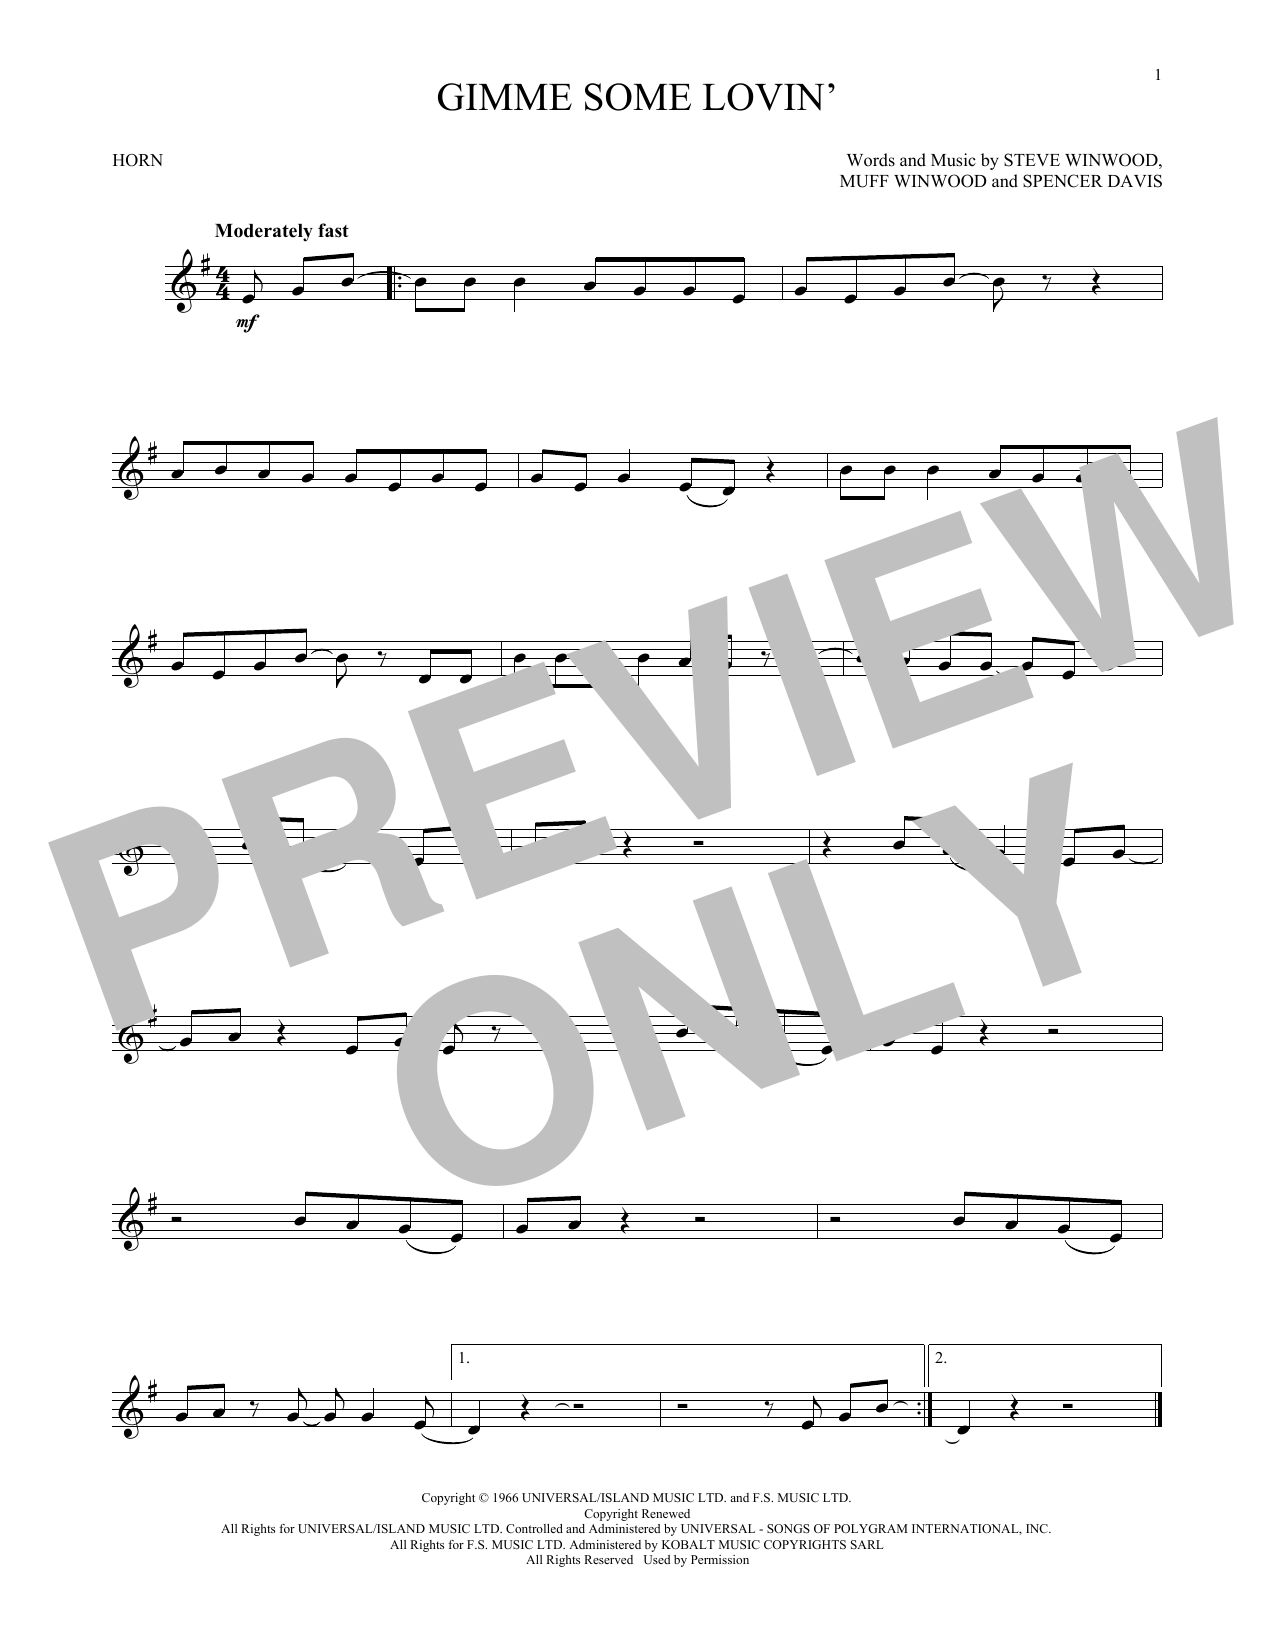 Gimme Some Lovin' (French Horn Solo)